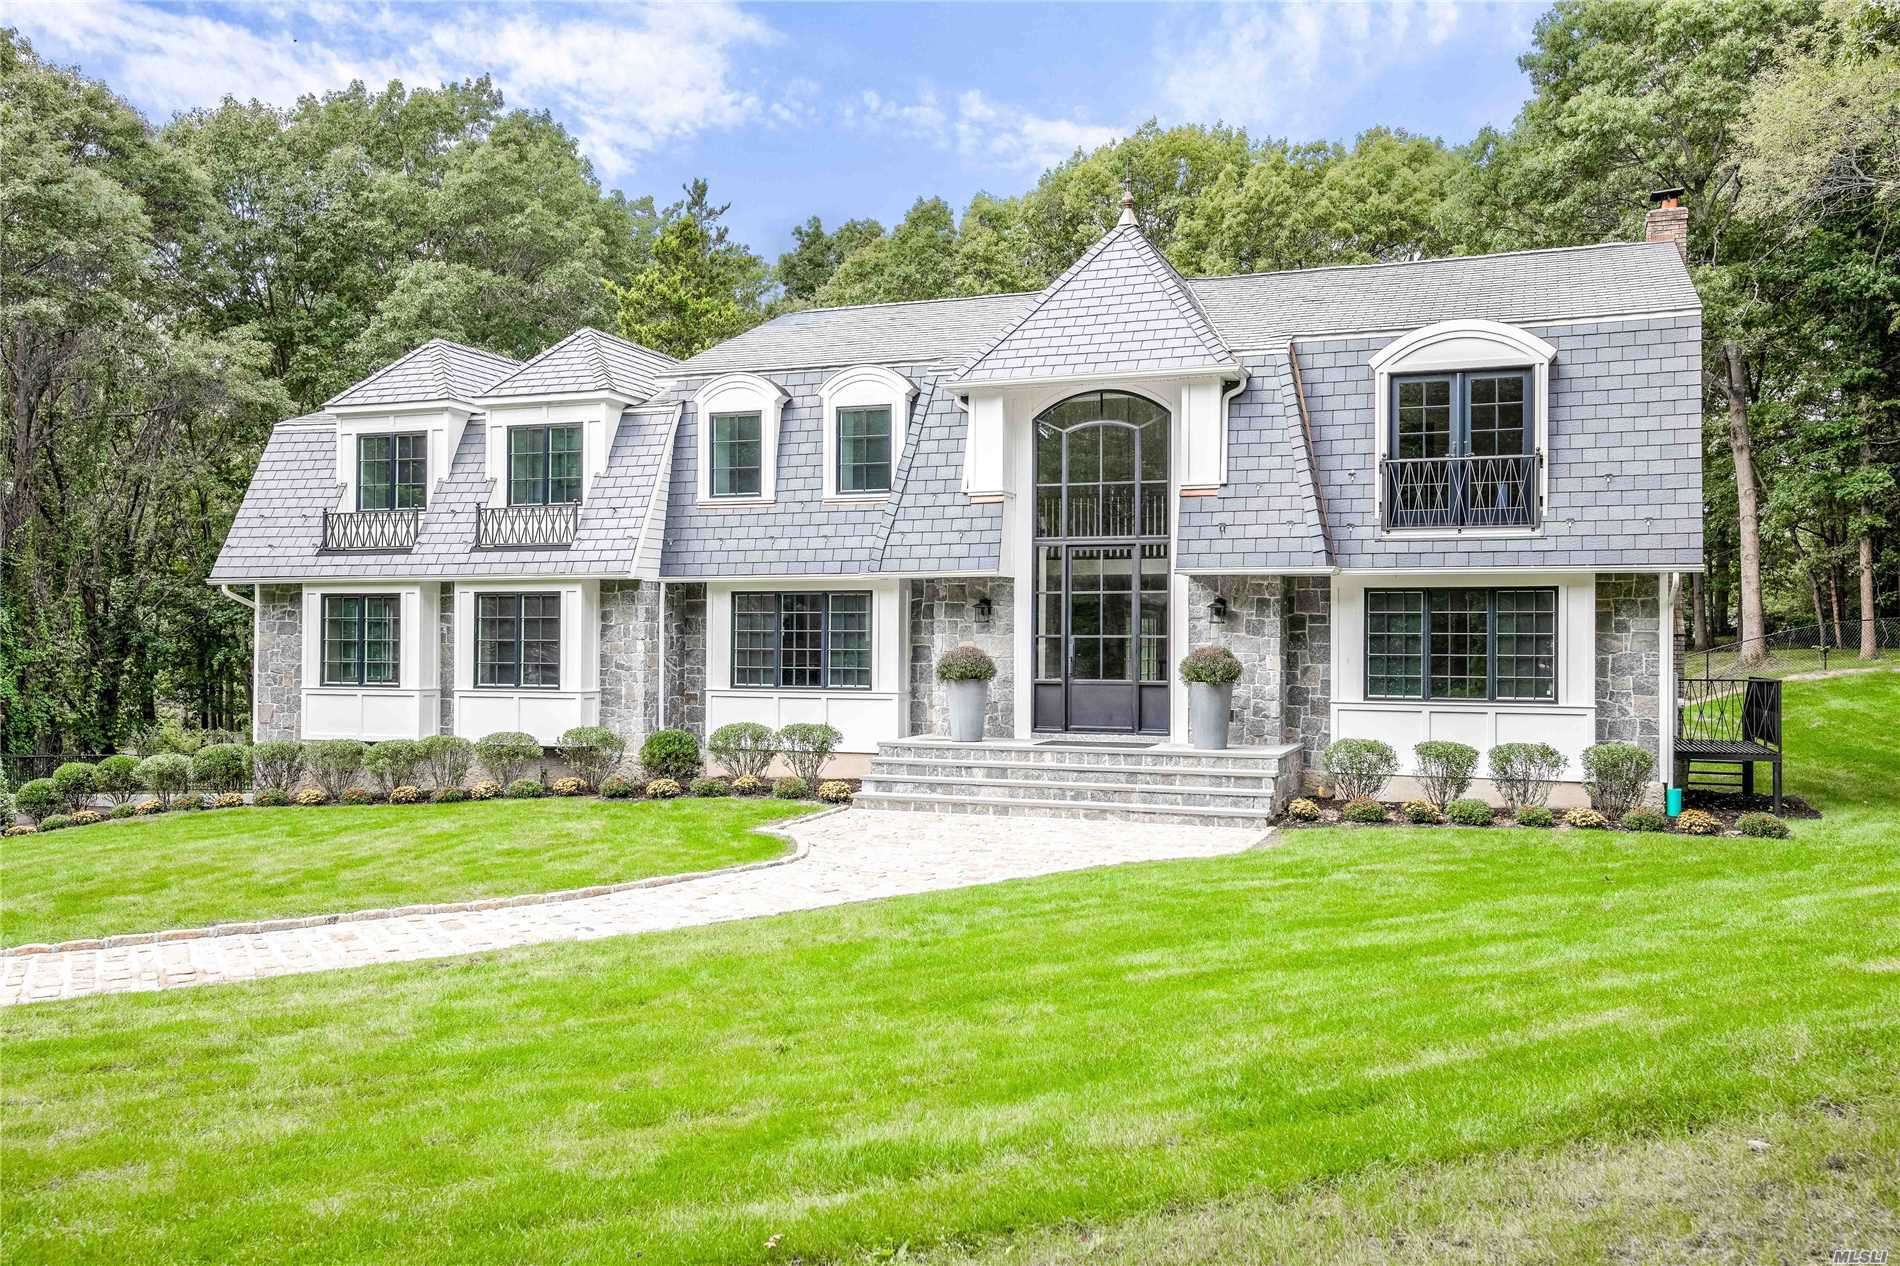 Set On Quiet Cul-De Sac. Brand New And Ready For You.. Light, Bright, All White. Modern Floor Plan That Works For Today's Lifestyle. Nothing To Do But Move In. 2 Acres With Pool, Spa And Cabana. 5 Car Garage. Cold Spring Harbor Schools. Private Beach And Mooring.Police Force. Goose Hill Primary, West Side Elementary, Cold Spring Harbor Middle/High Schoolschool District. 5 Min To Lirr.